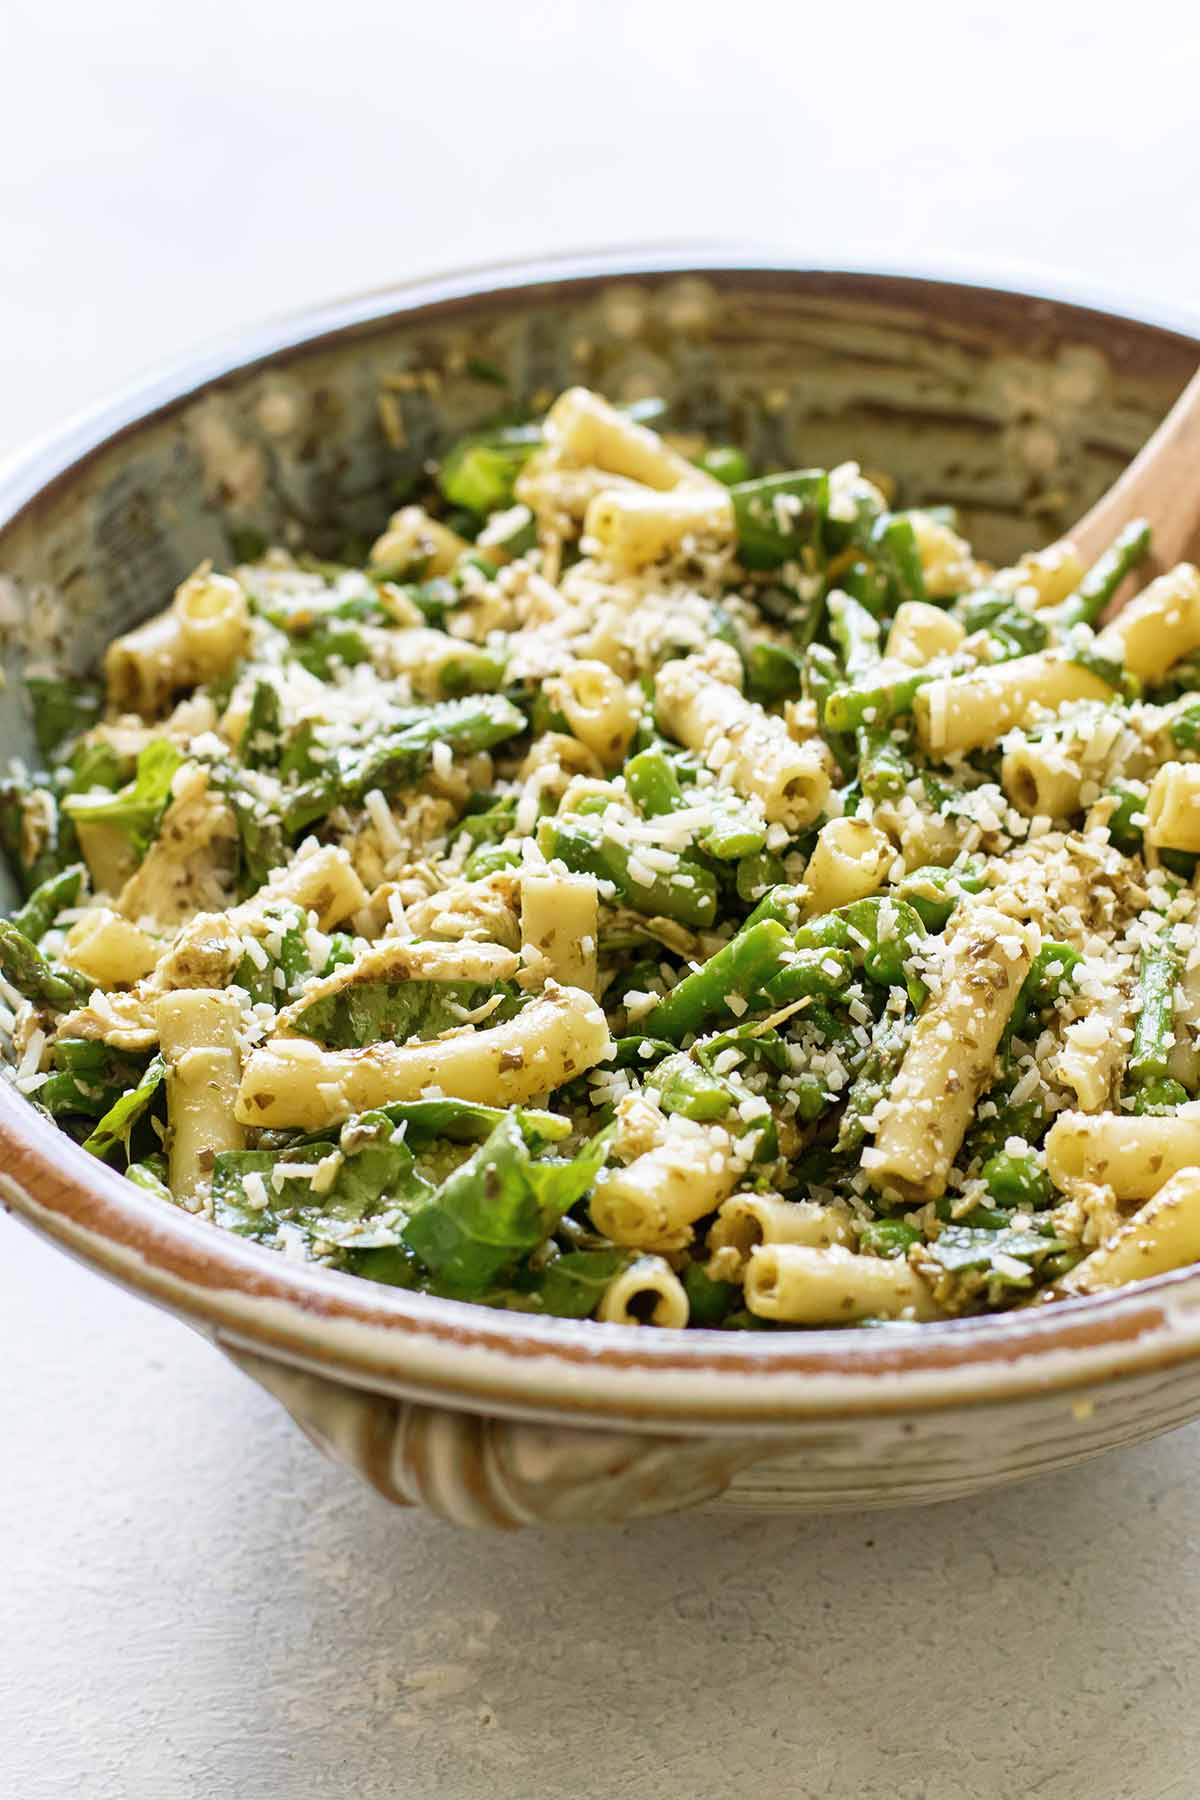 photo of a bowl of pasta salad